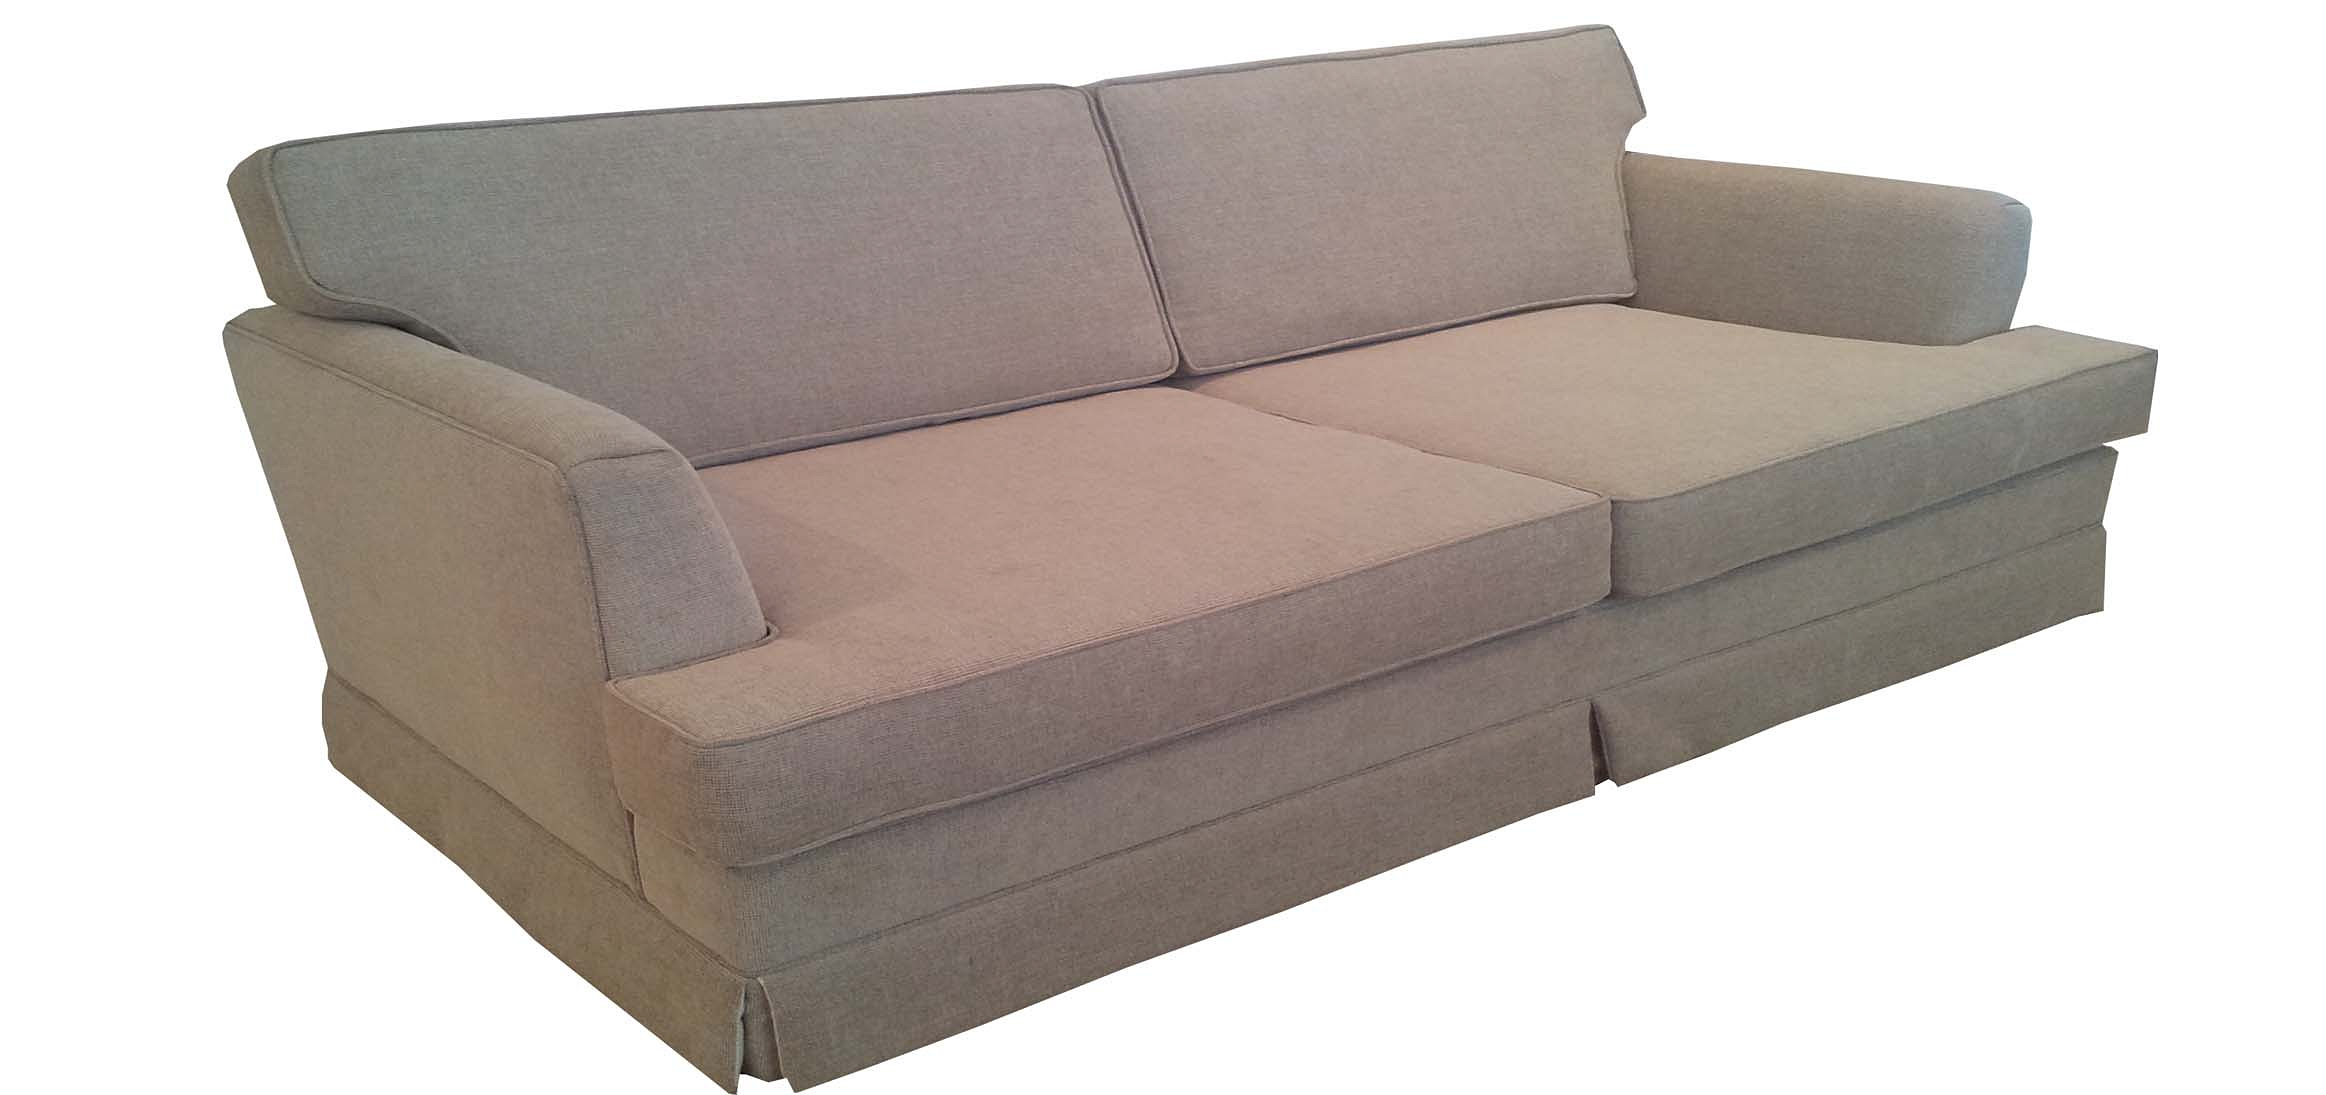 Retro furniture upholsterers gold coast upholstery for Sofa couches gold coast